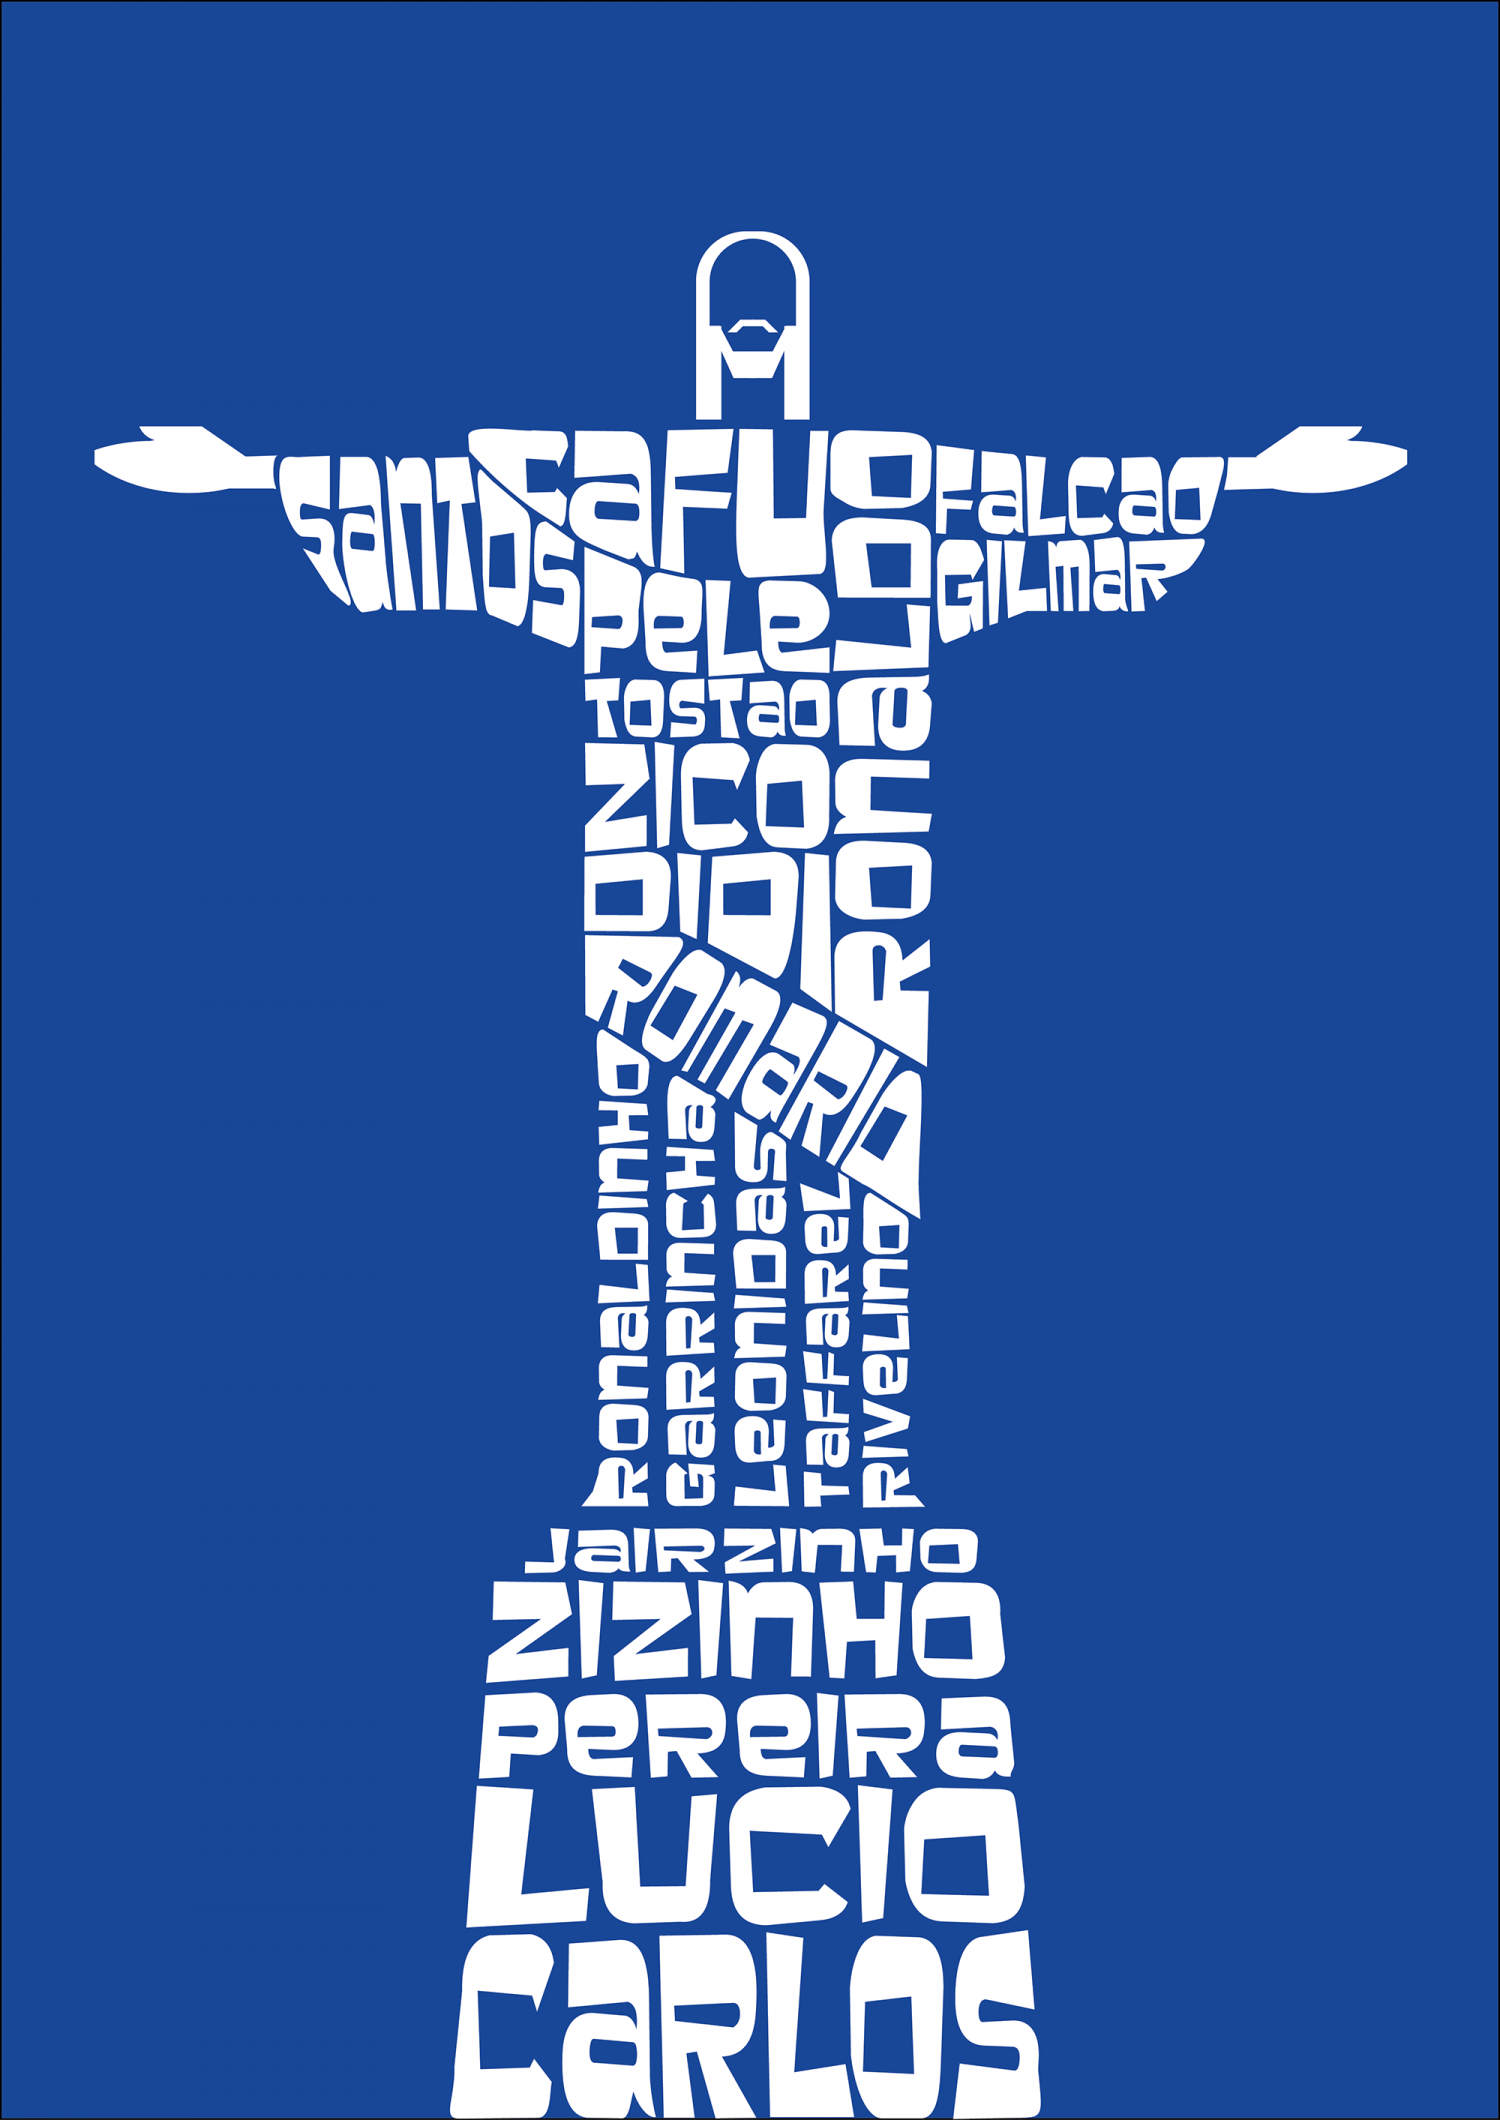 Christ the Redeemer Football Statue Infographic